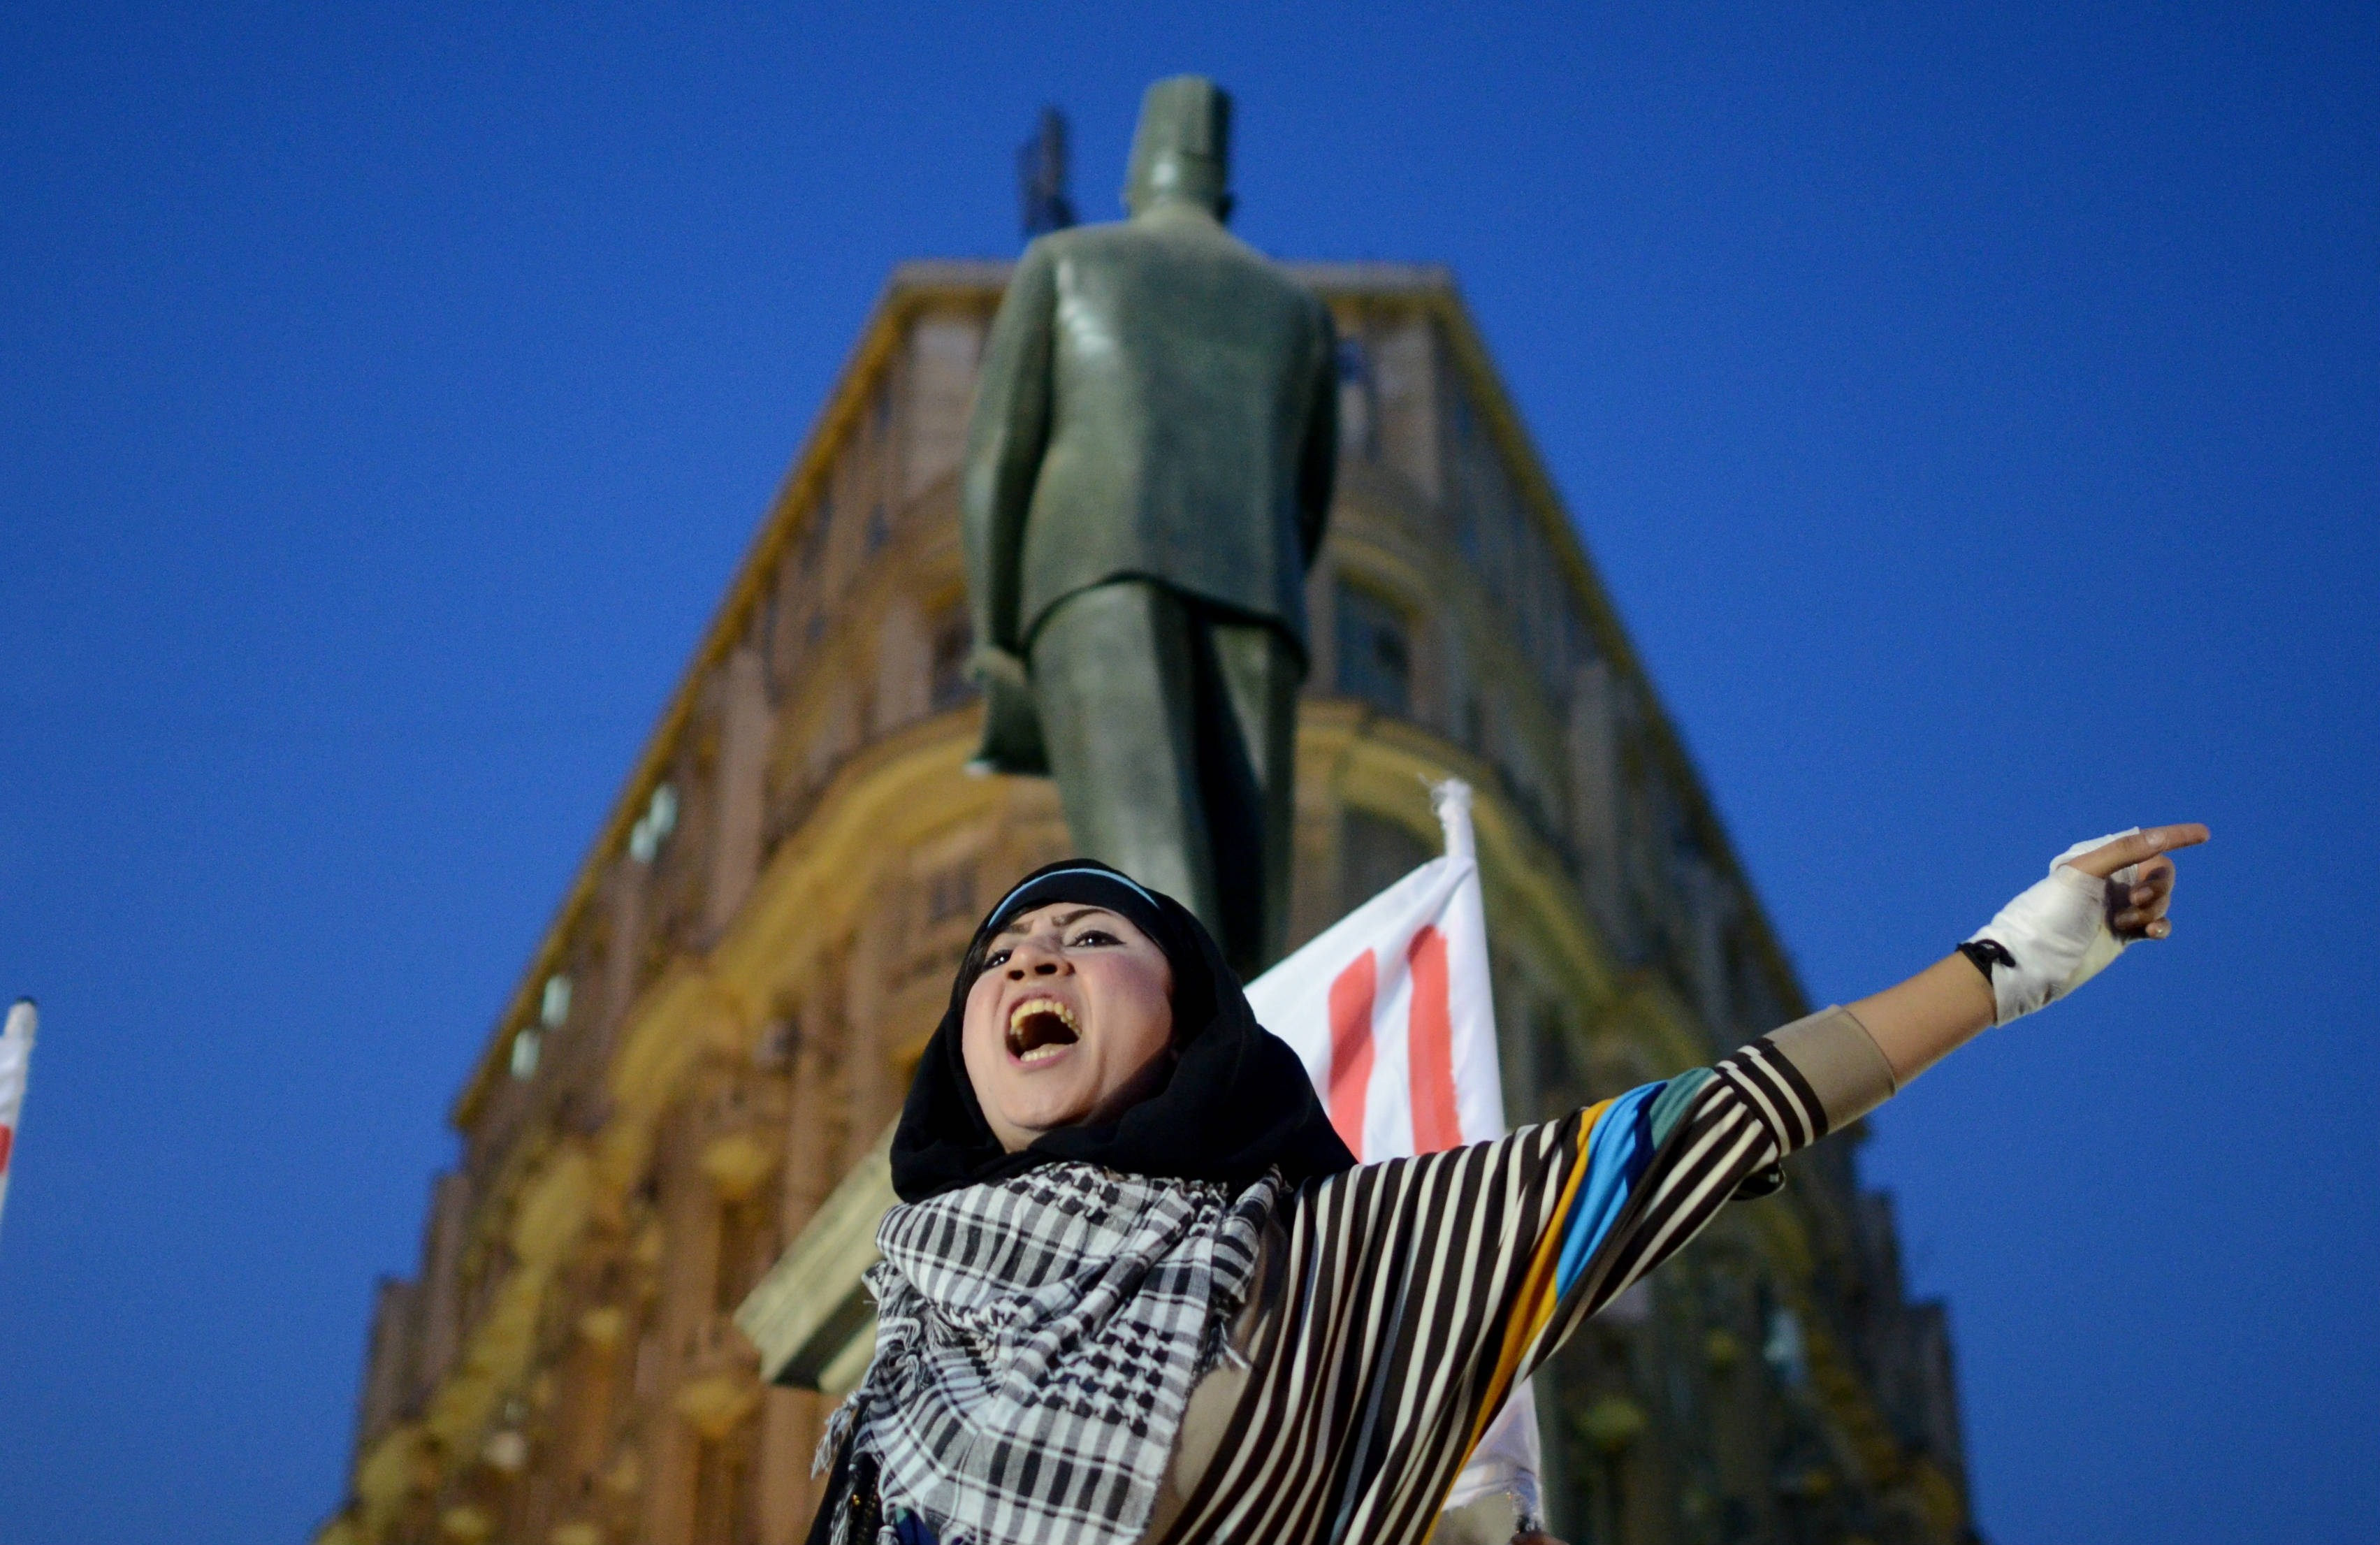 A protestor shouts slogans at Talaat Harb Square, downtown Cairo on November 28, 2013, during a demonstration to protest against a new law which regulates demonstrations.     (AFP PHOTO / MOHAMED EL-SHAHED)